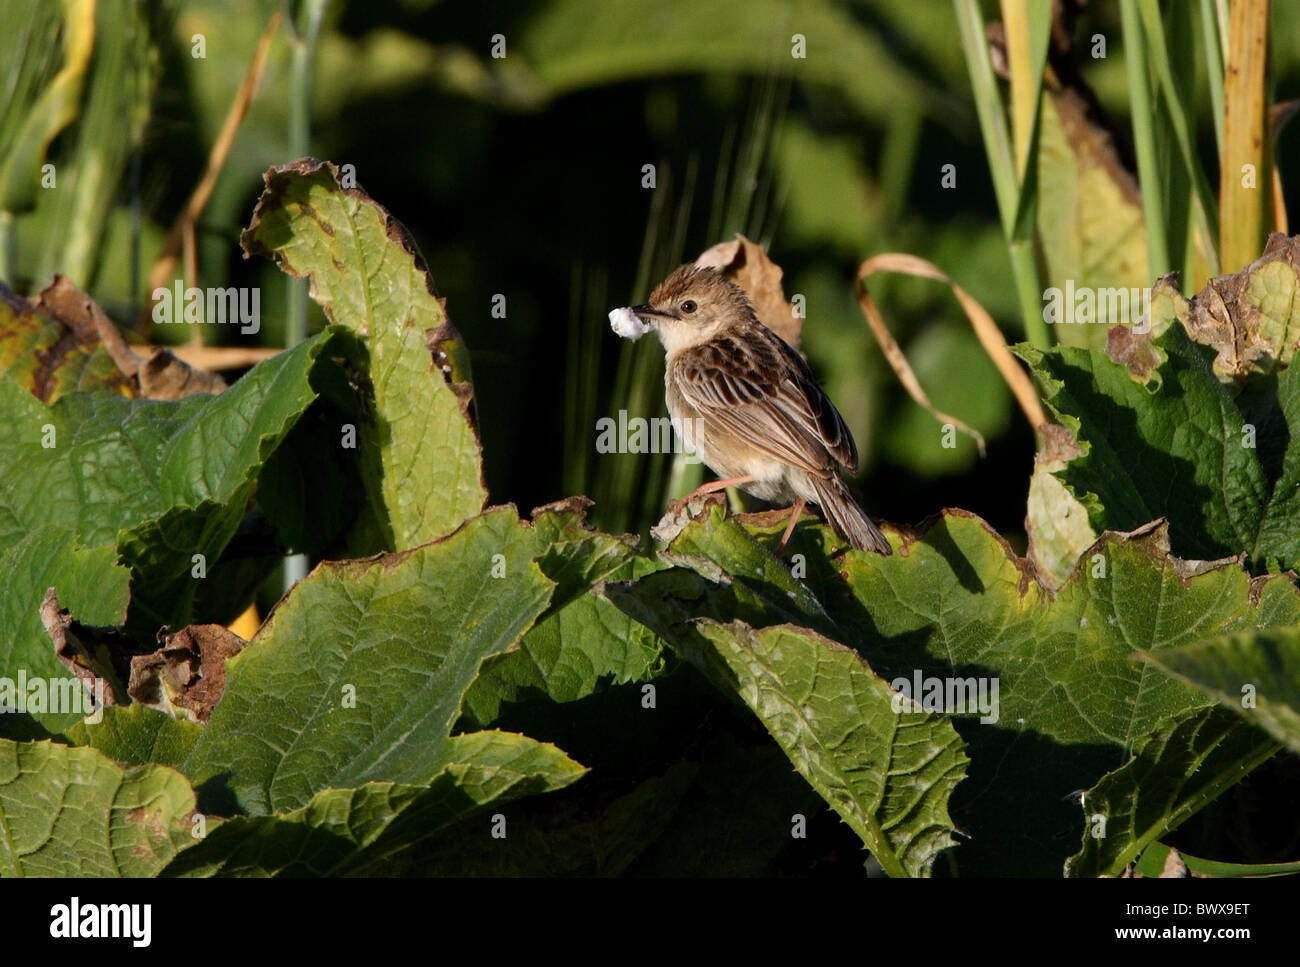 Fan-tailed Warbler (Cisticola juncidis cisticola) adult, with nesting material in beak, perched on leaf, Morocco, - Stock Image